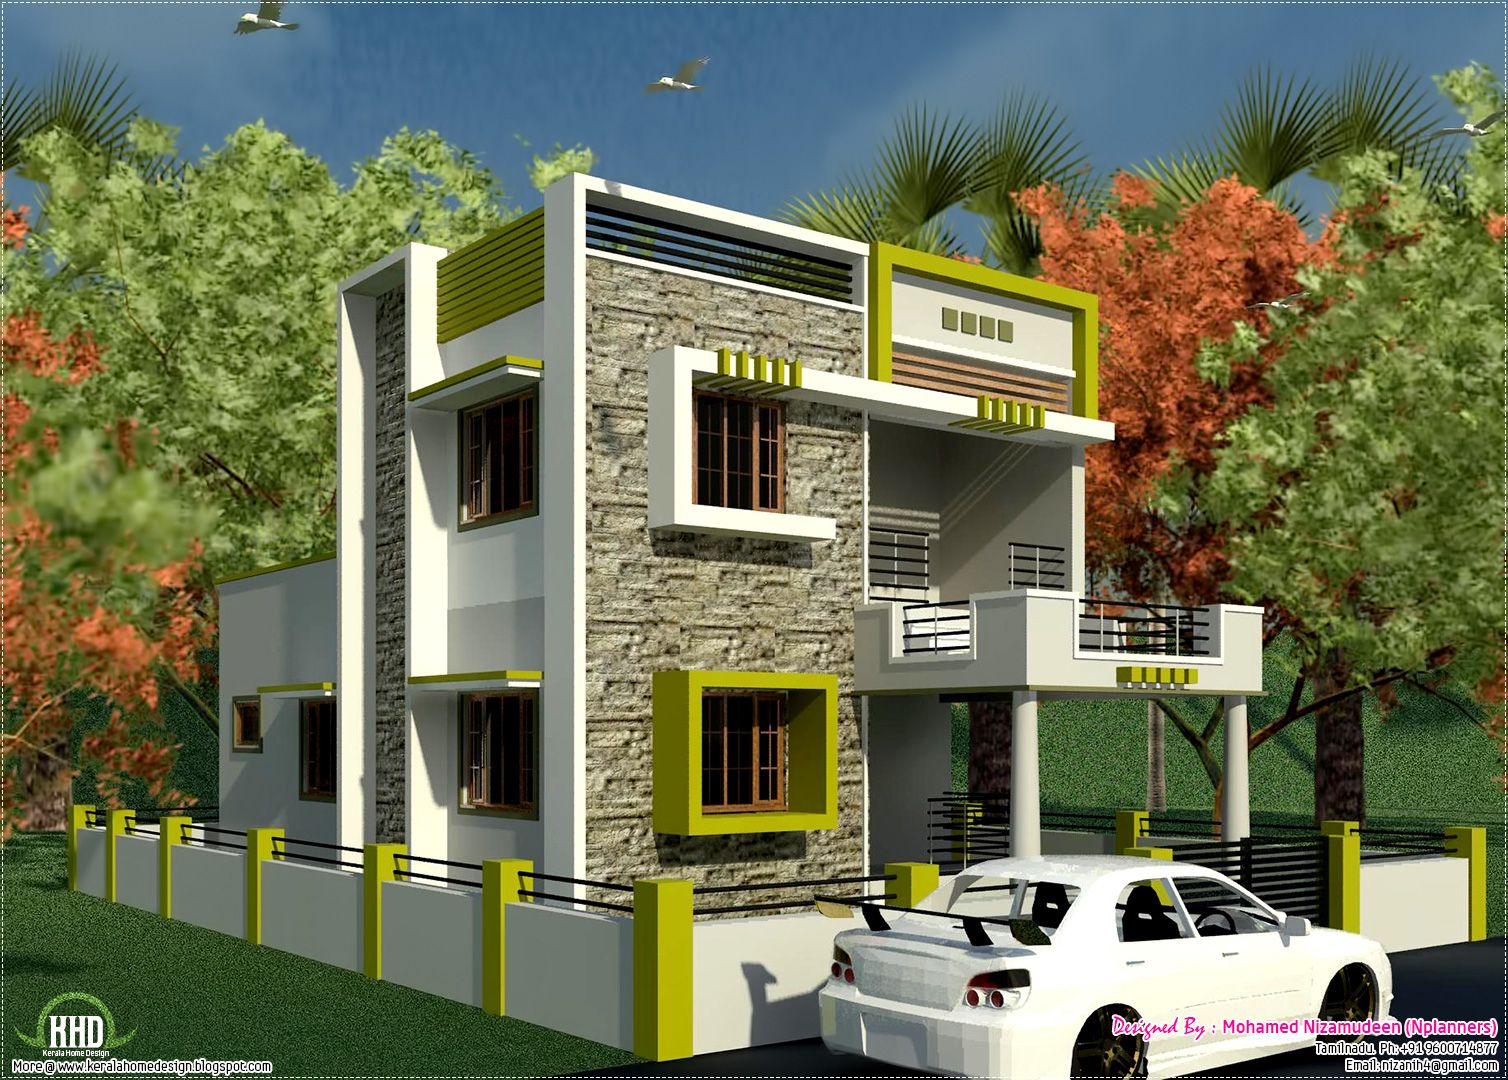 Small house with car park design tobfav com ideas for Indian home exterior design photos